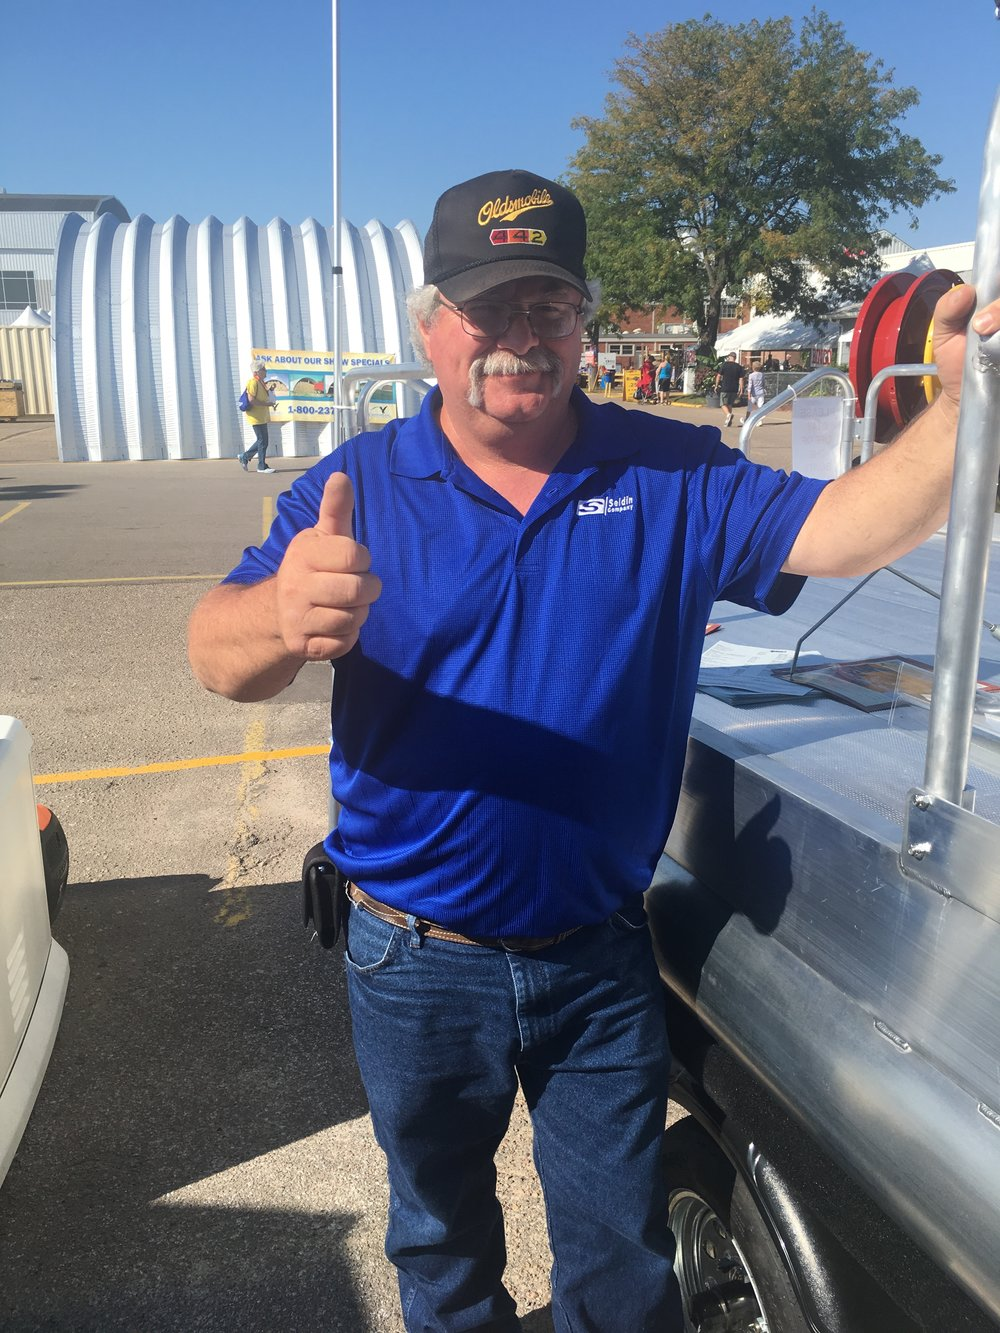 This is Randy Boltz from right here in Grand Island Nebraska. Randy purchased the very 1st model of the first production boat we manufactured back in 1987. We just caught up with Randy this year at the Nebraska State Fair and he still gives us the thumbs up and big smile when we ask, do you still like that boat? That is what makes this business fun.